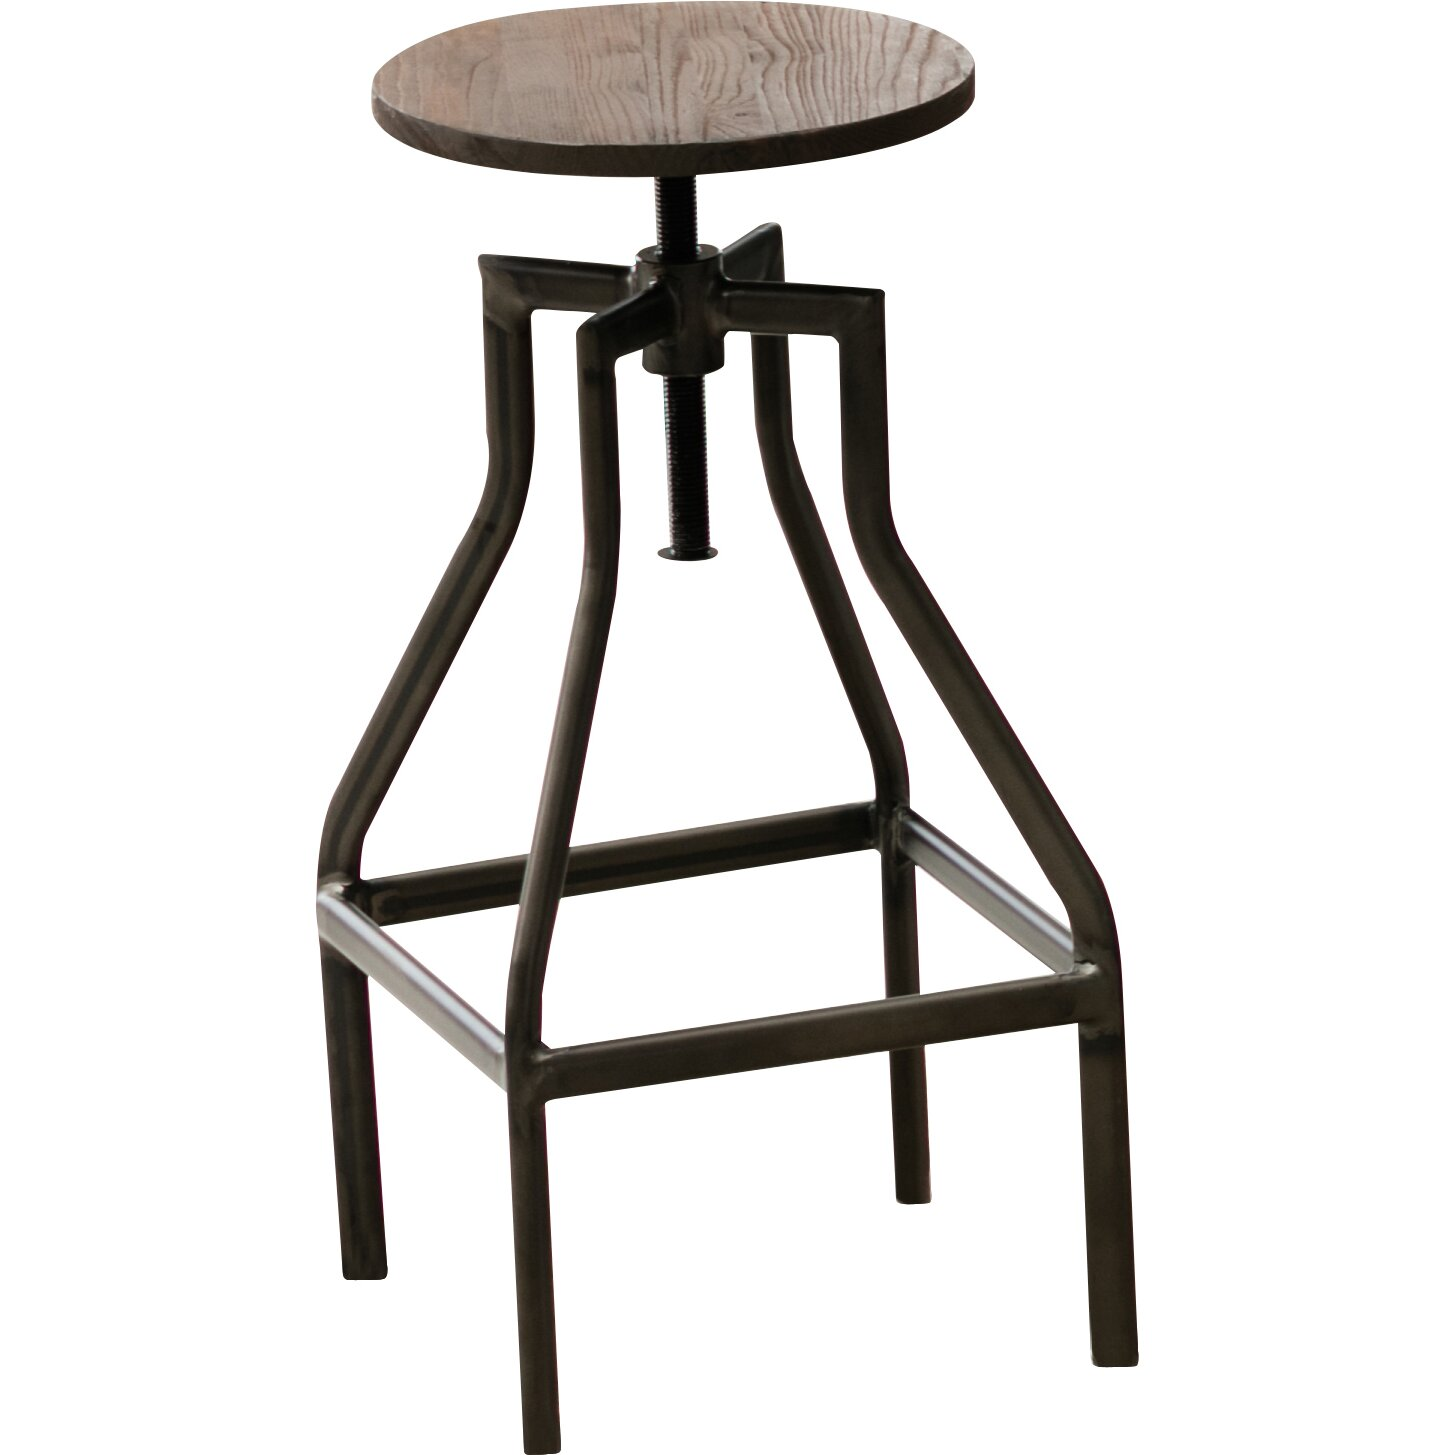 French Industrial Farmhouse Adjustable Height Swivel